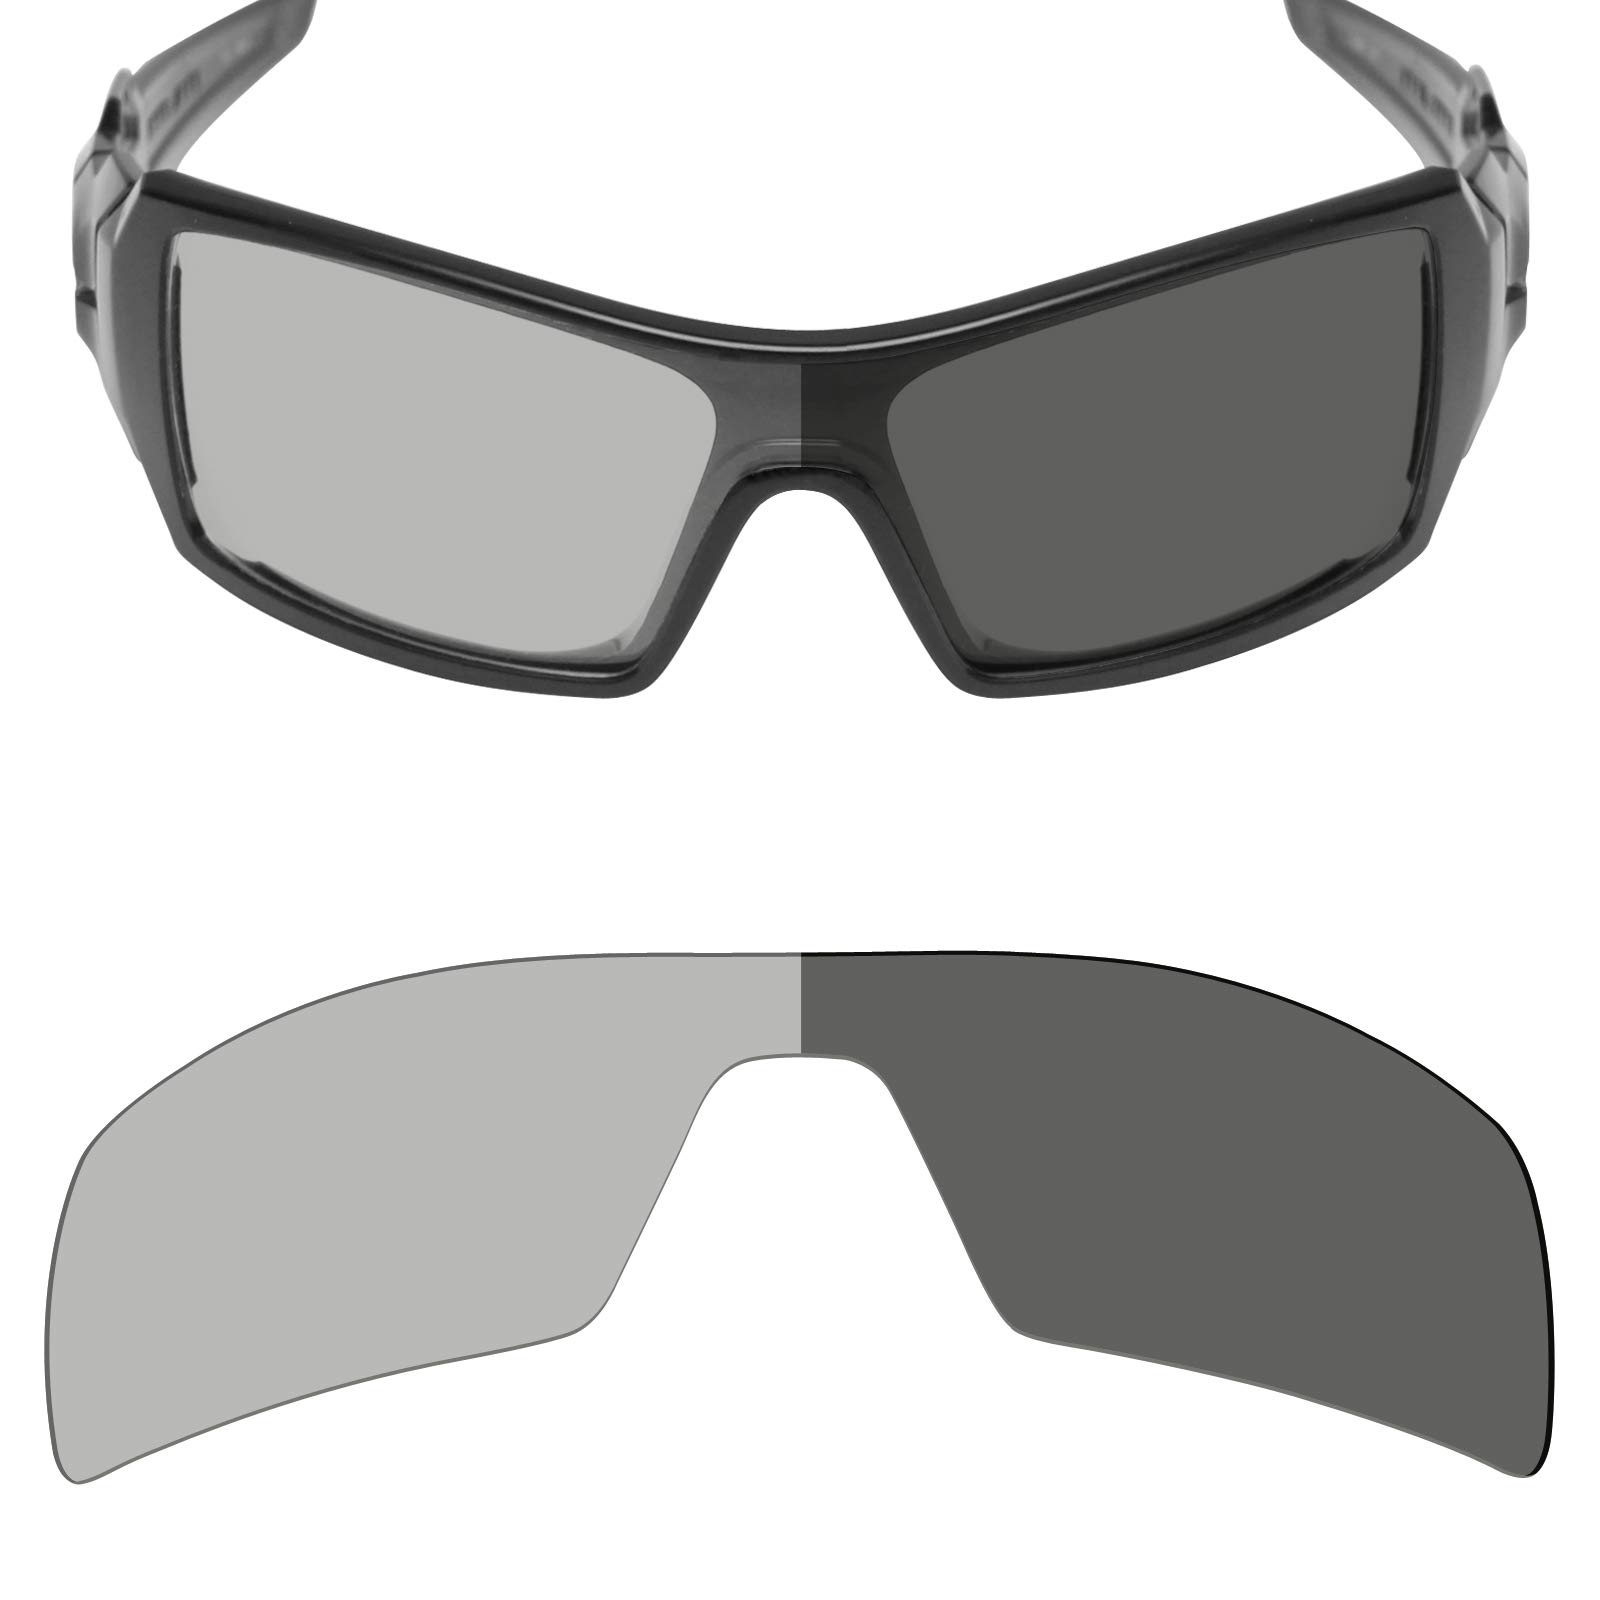 b5239cb32d62d Mryok Polarized Replacement Lenses for Oakley Oil Rig - Grey Photochromic